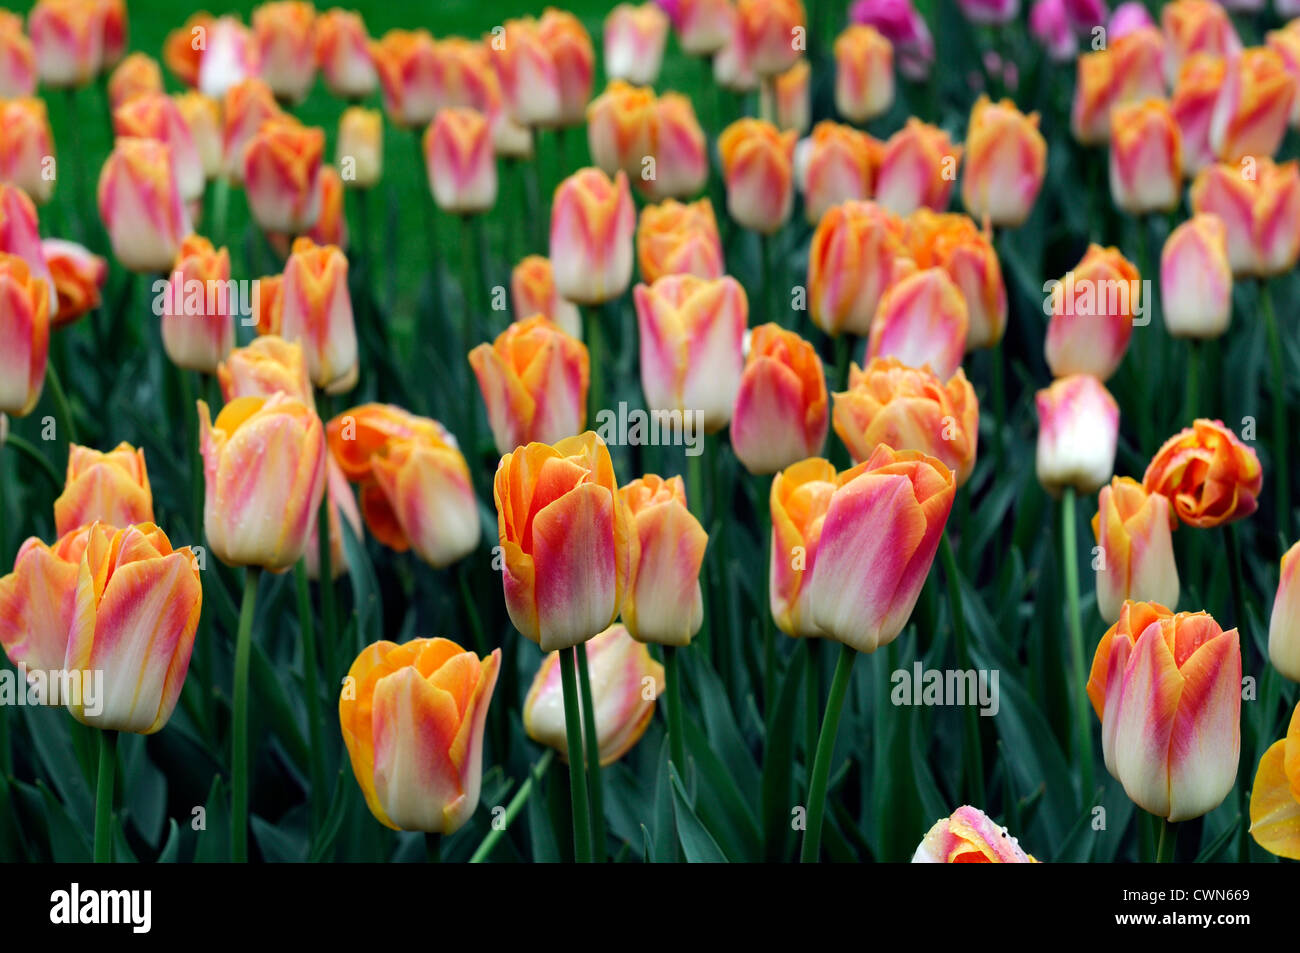 Tulipa salmon dynasty Triumph tulip ivory white edged pink yellow flowers spring flower bloom blossom bed two tone - Stock Image